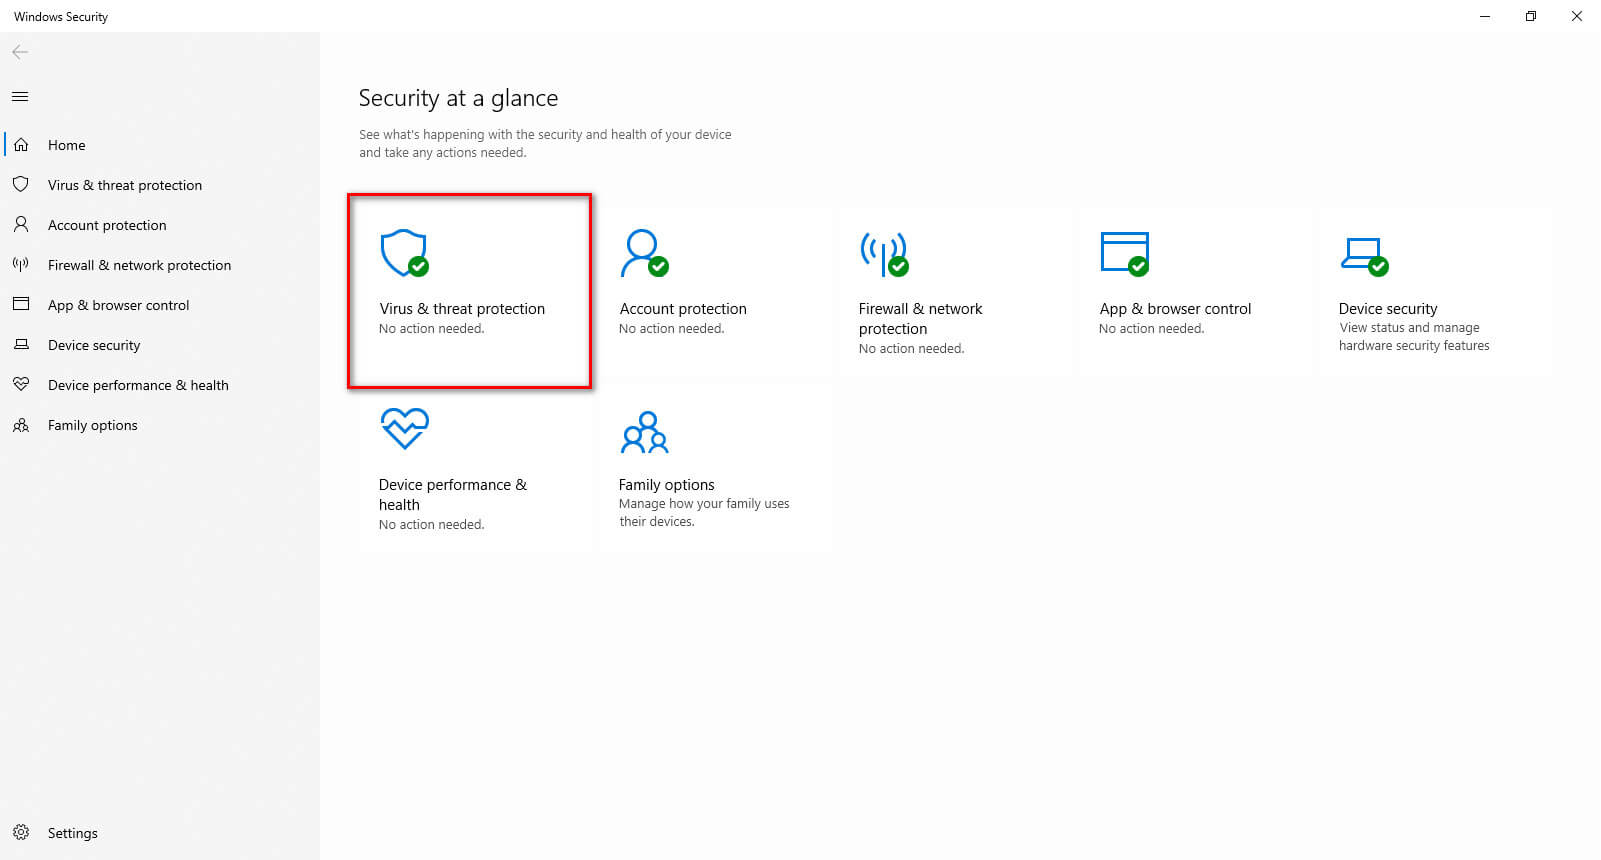 Tắt Windows Security trong Windows 10